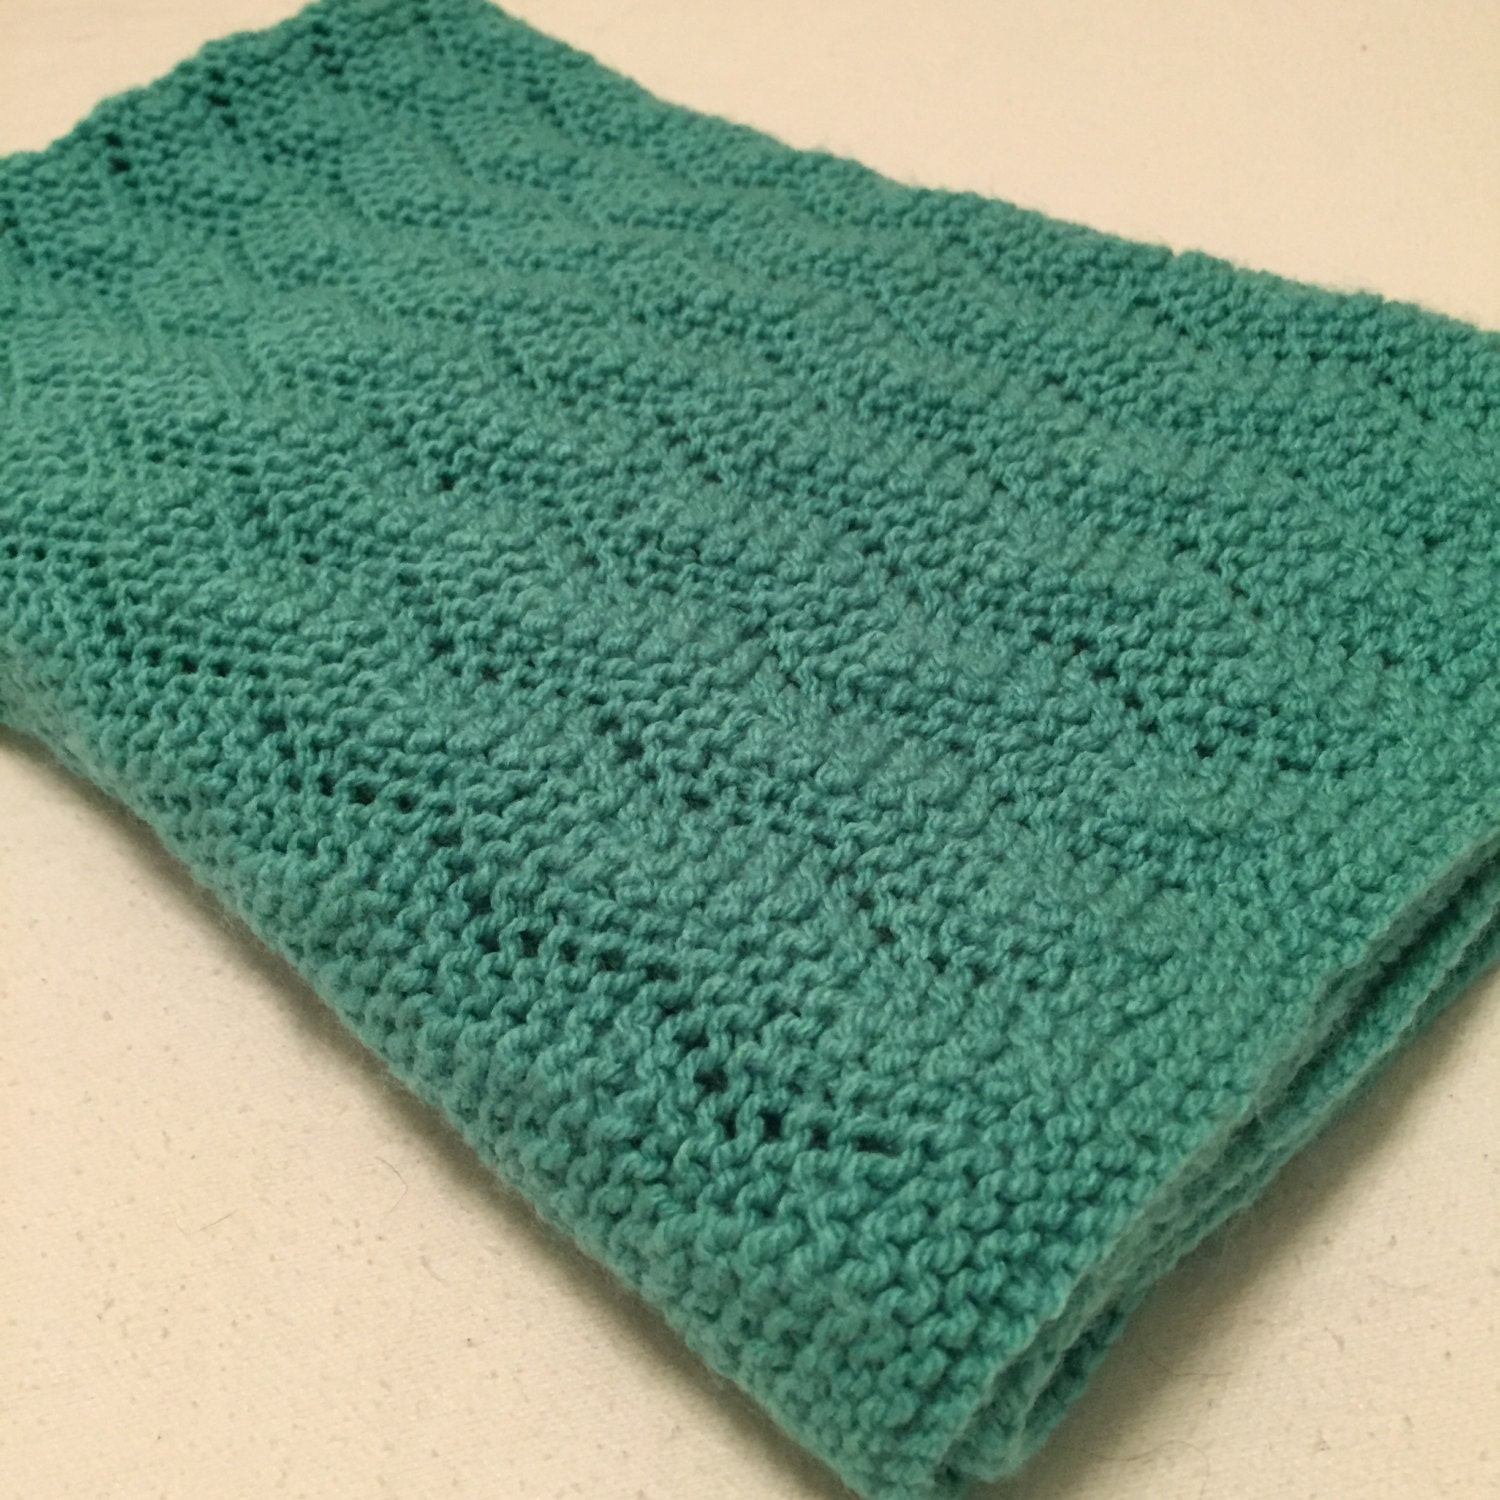 Hand Knitting Blankets : Hand knit dark turquoise baby blanket easy to wash and dry